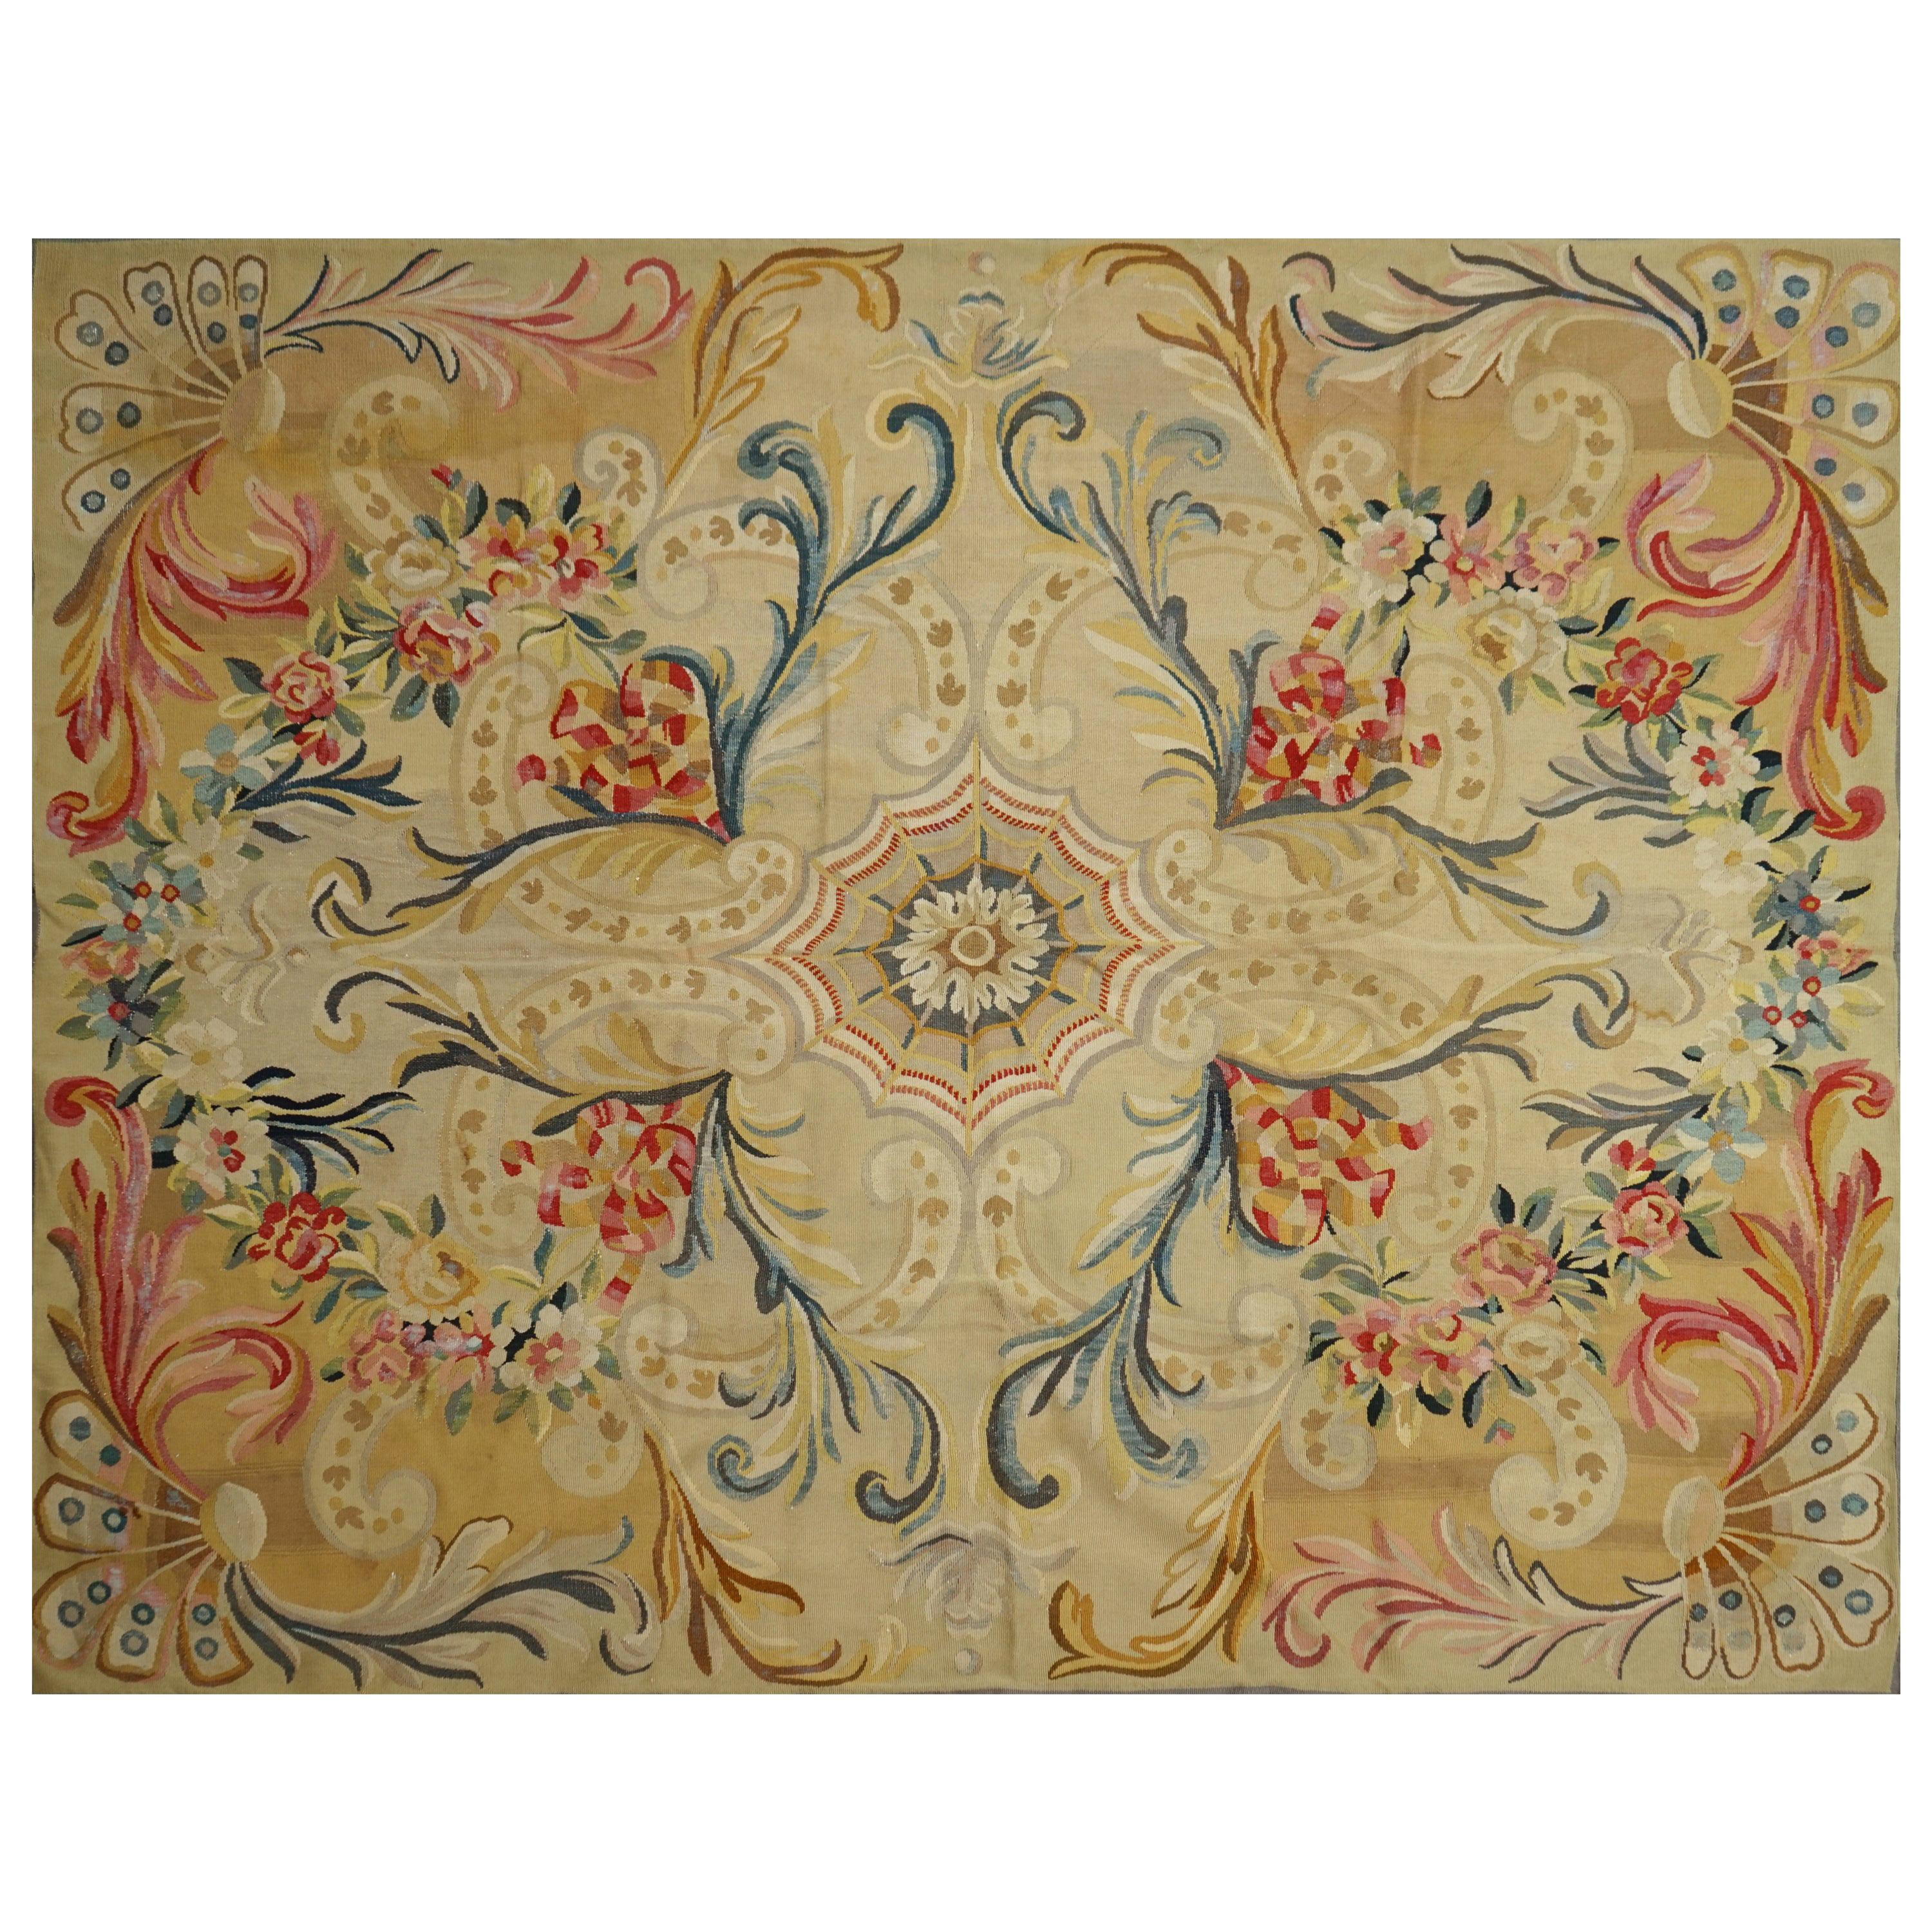 End of 19th Century Handwoven Antique Aubusson Rug